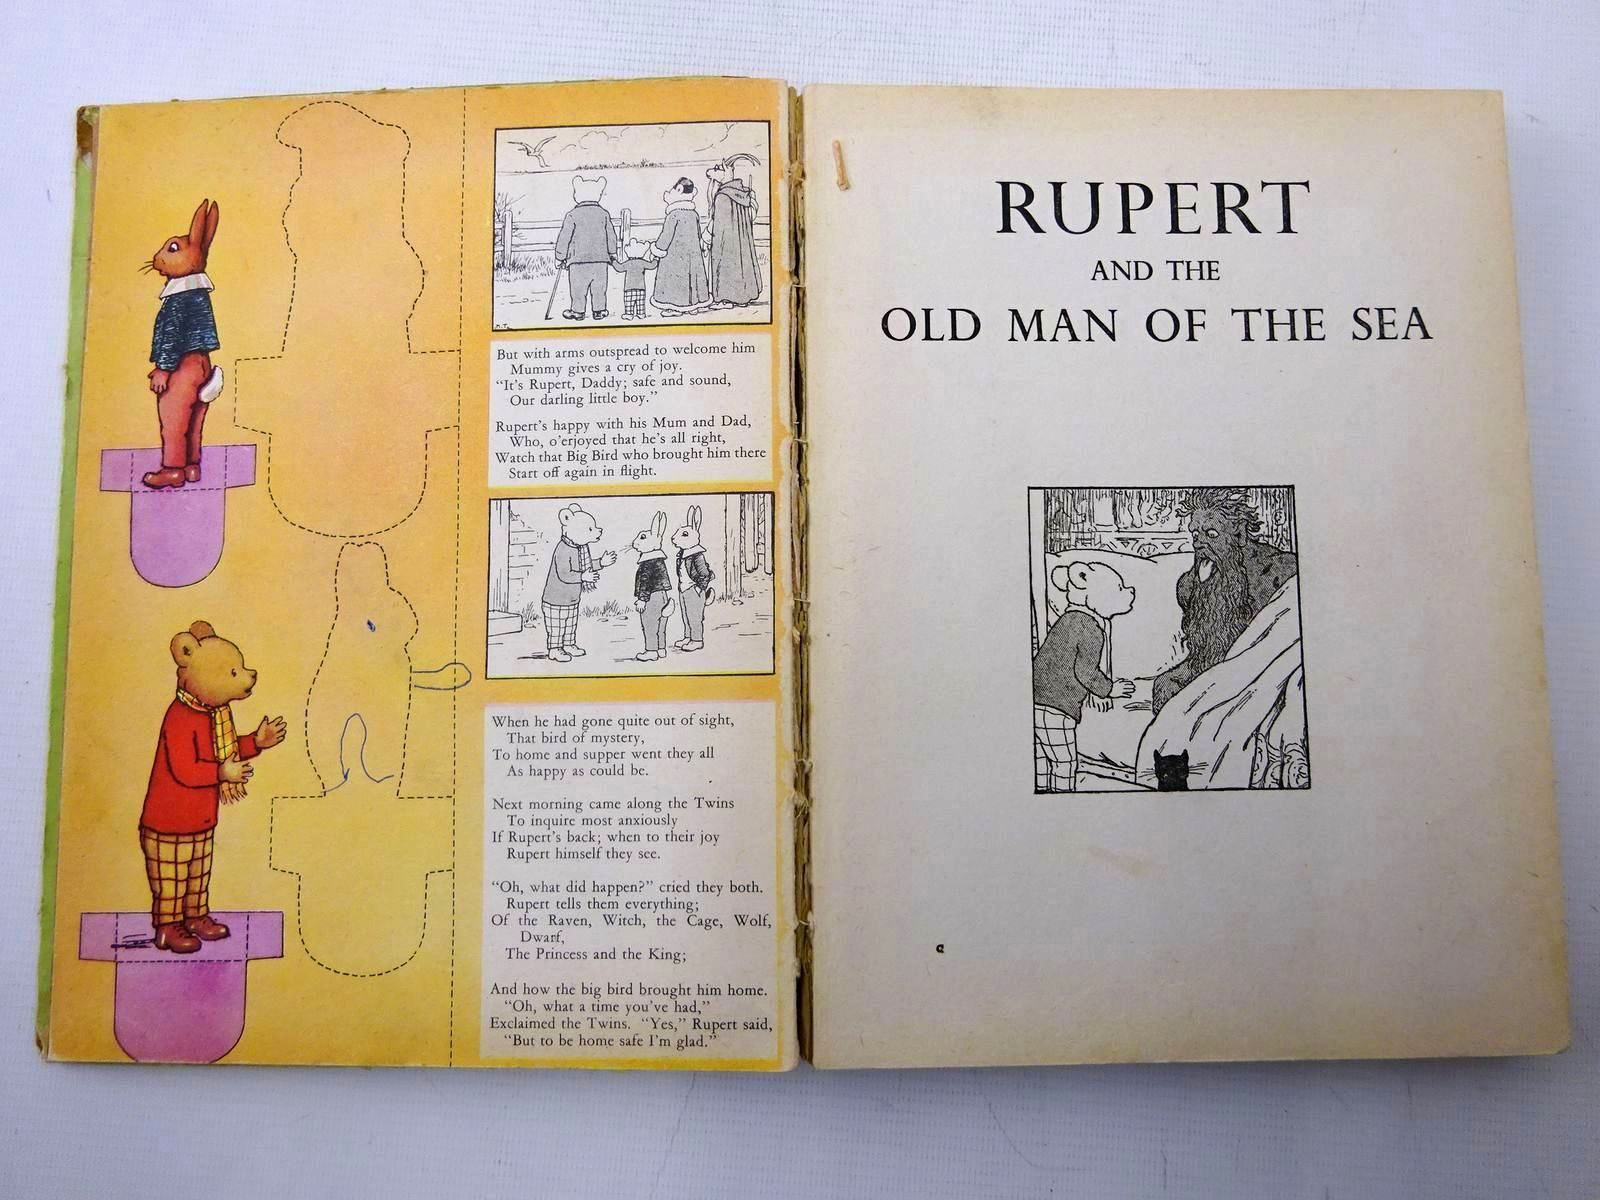 Photo of THE MONSTER RUPERT written by Tourtel, Mary illustrated by Tourtel, Mary published by Sampson Low, Marston & Co. Ltd. (STOCK CODE: 2126450)  for sale by Stella & Rose's Books